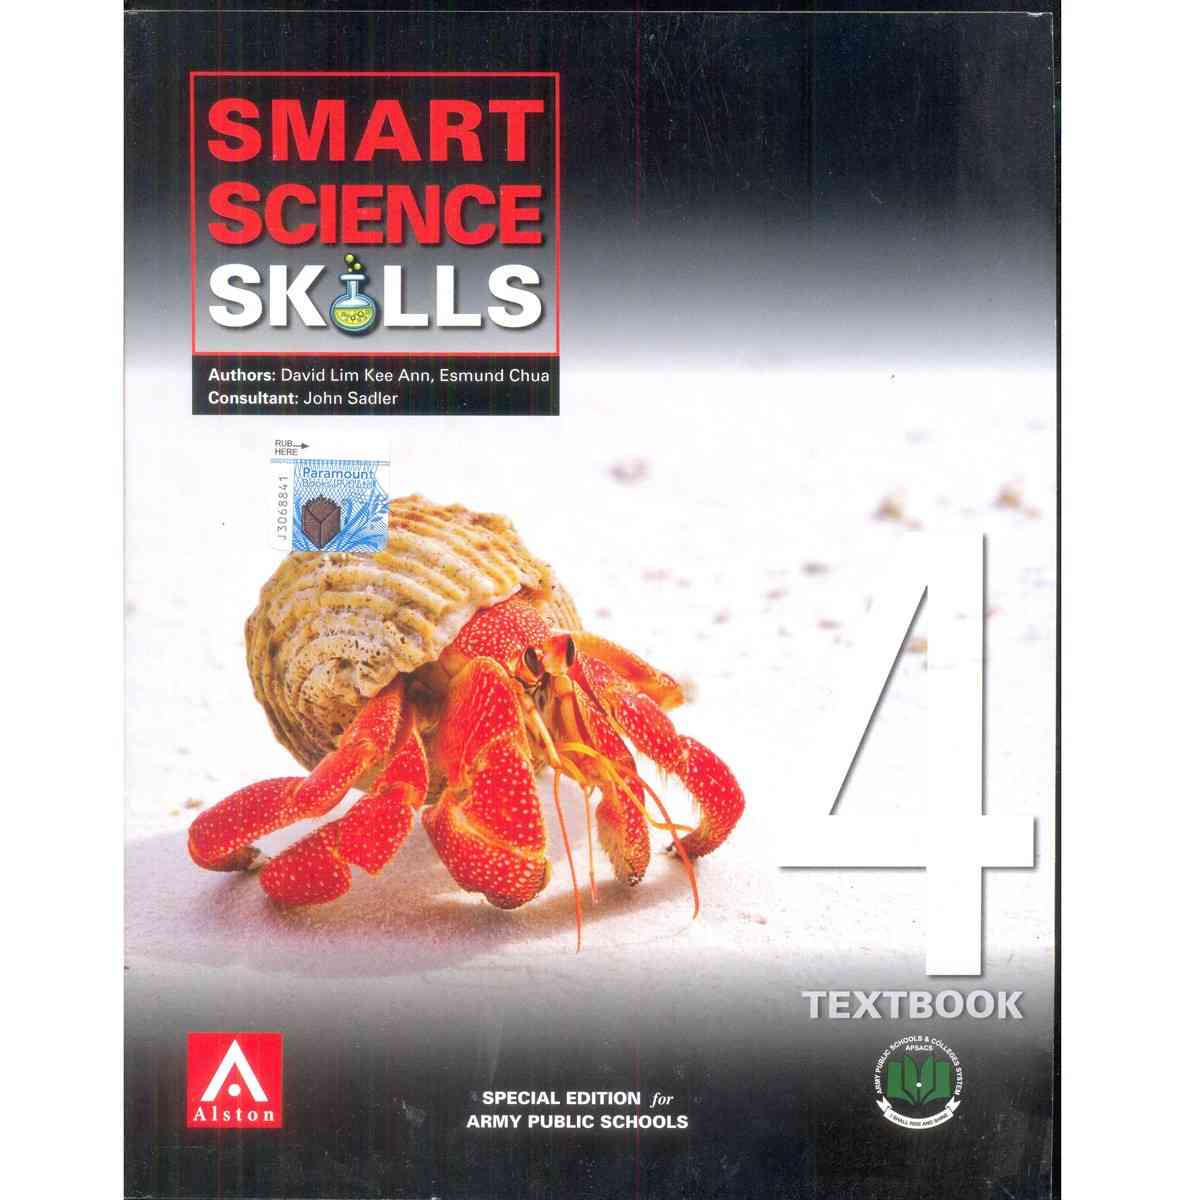 Smart Science Skills Textbook 4